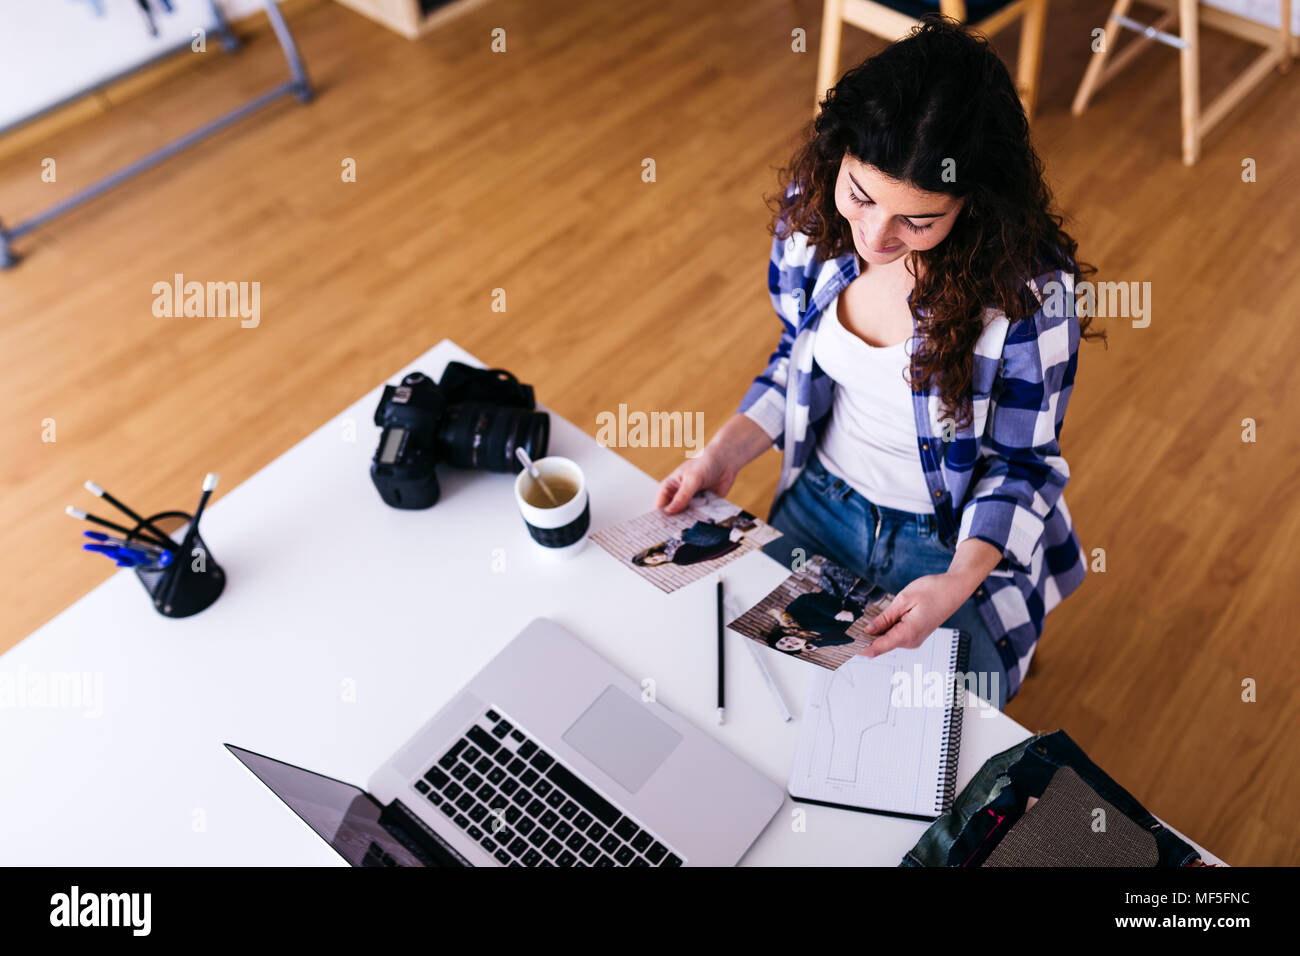 Fashion designer with laptop looking at photos in studio - Stock Image